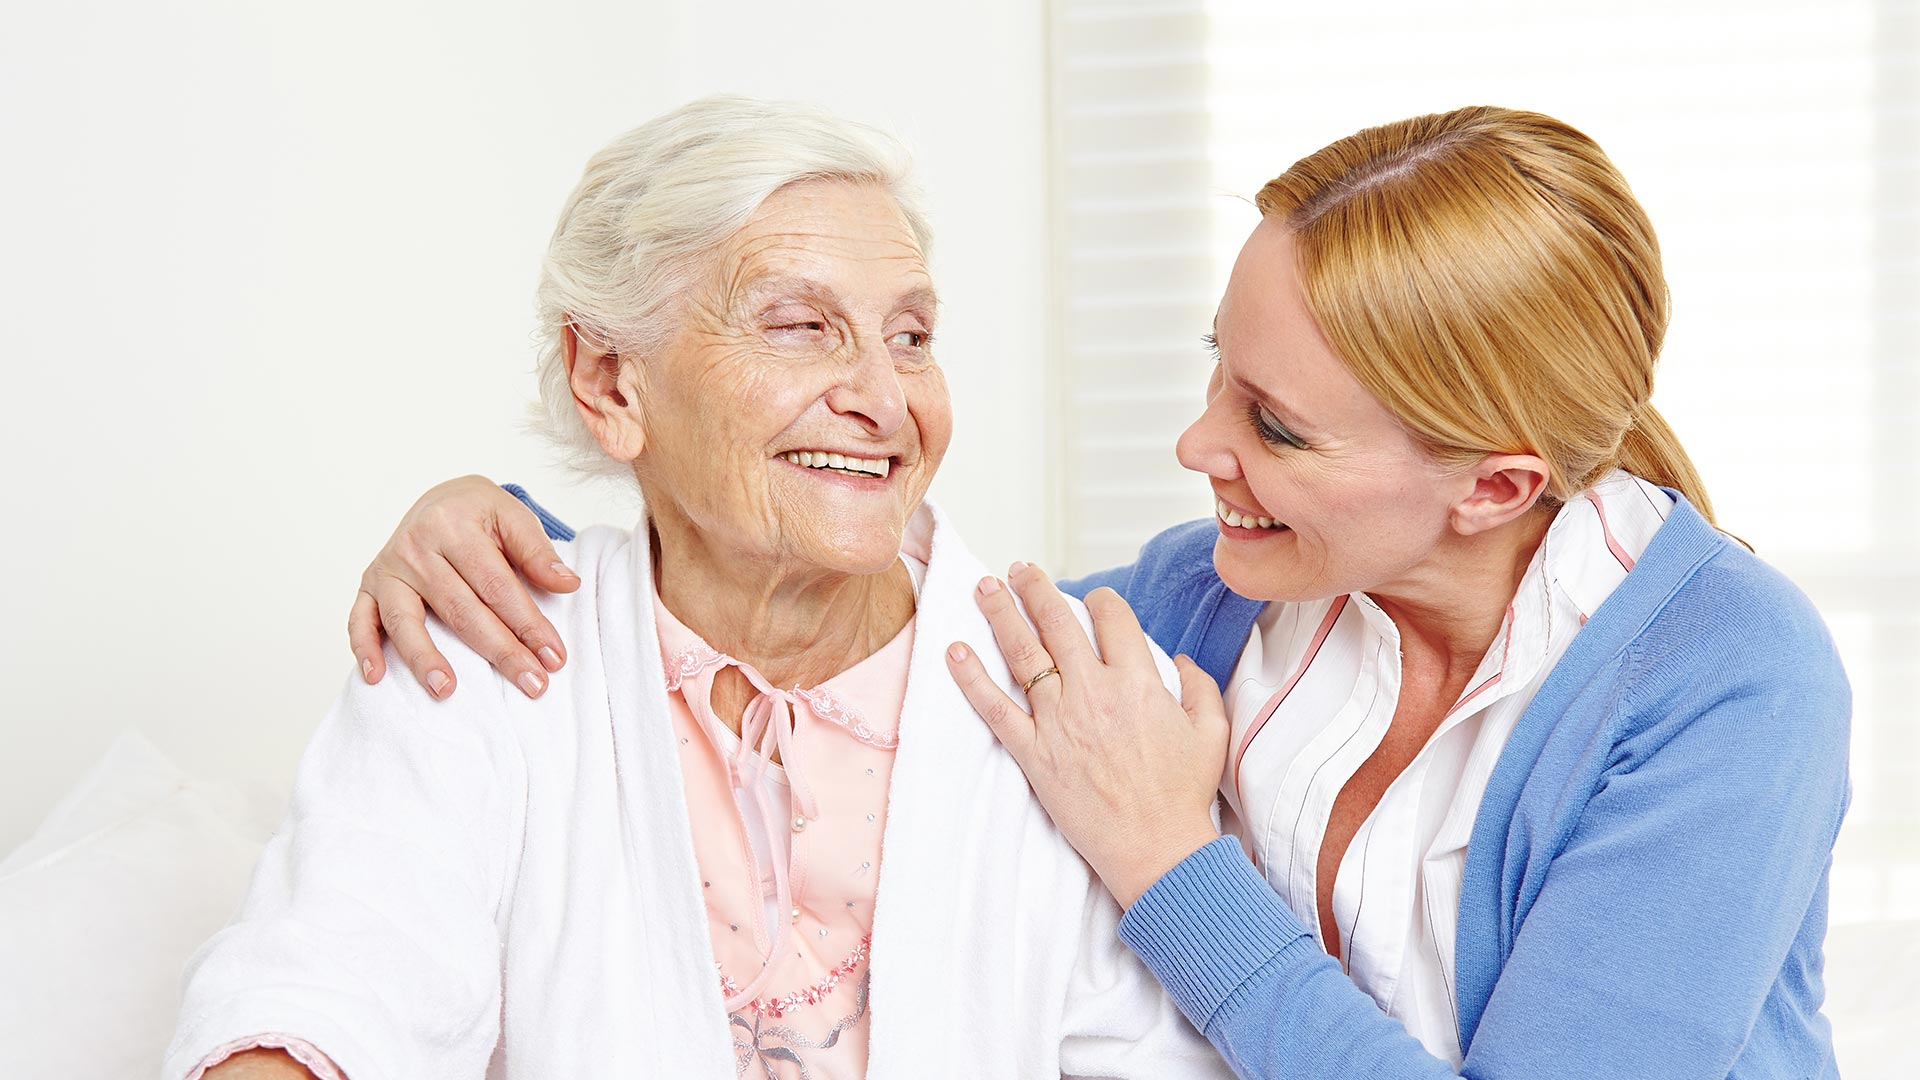 Aged Care Provider | A Silent Opportunity